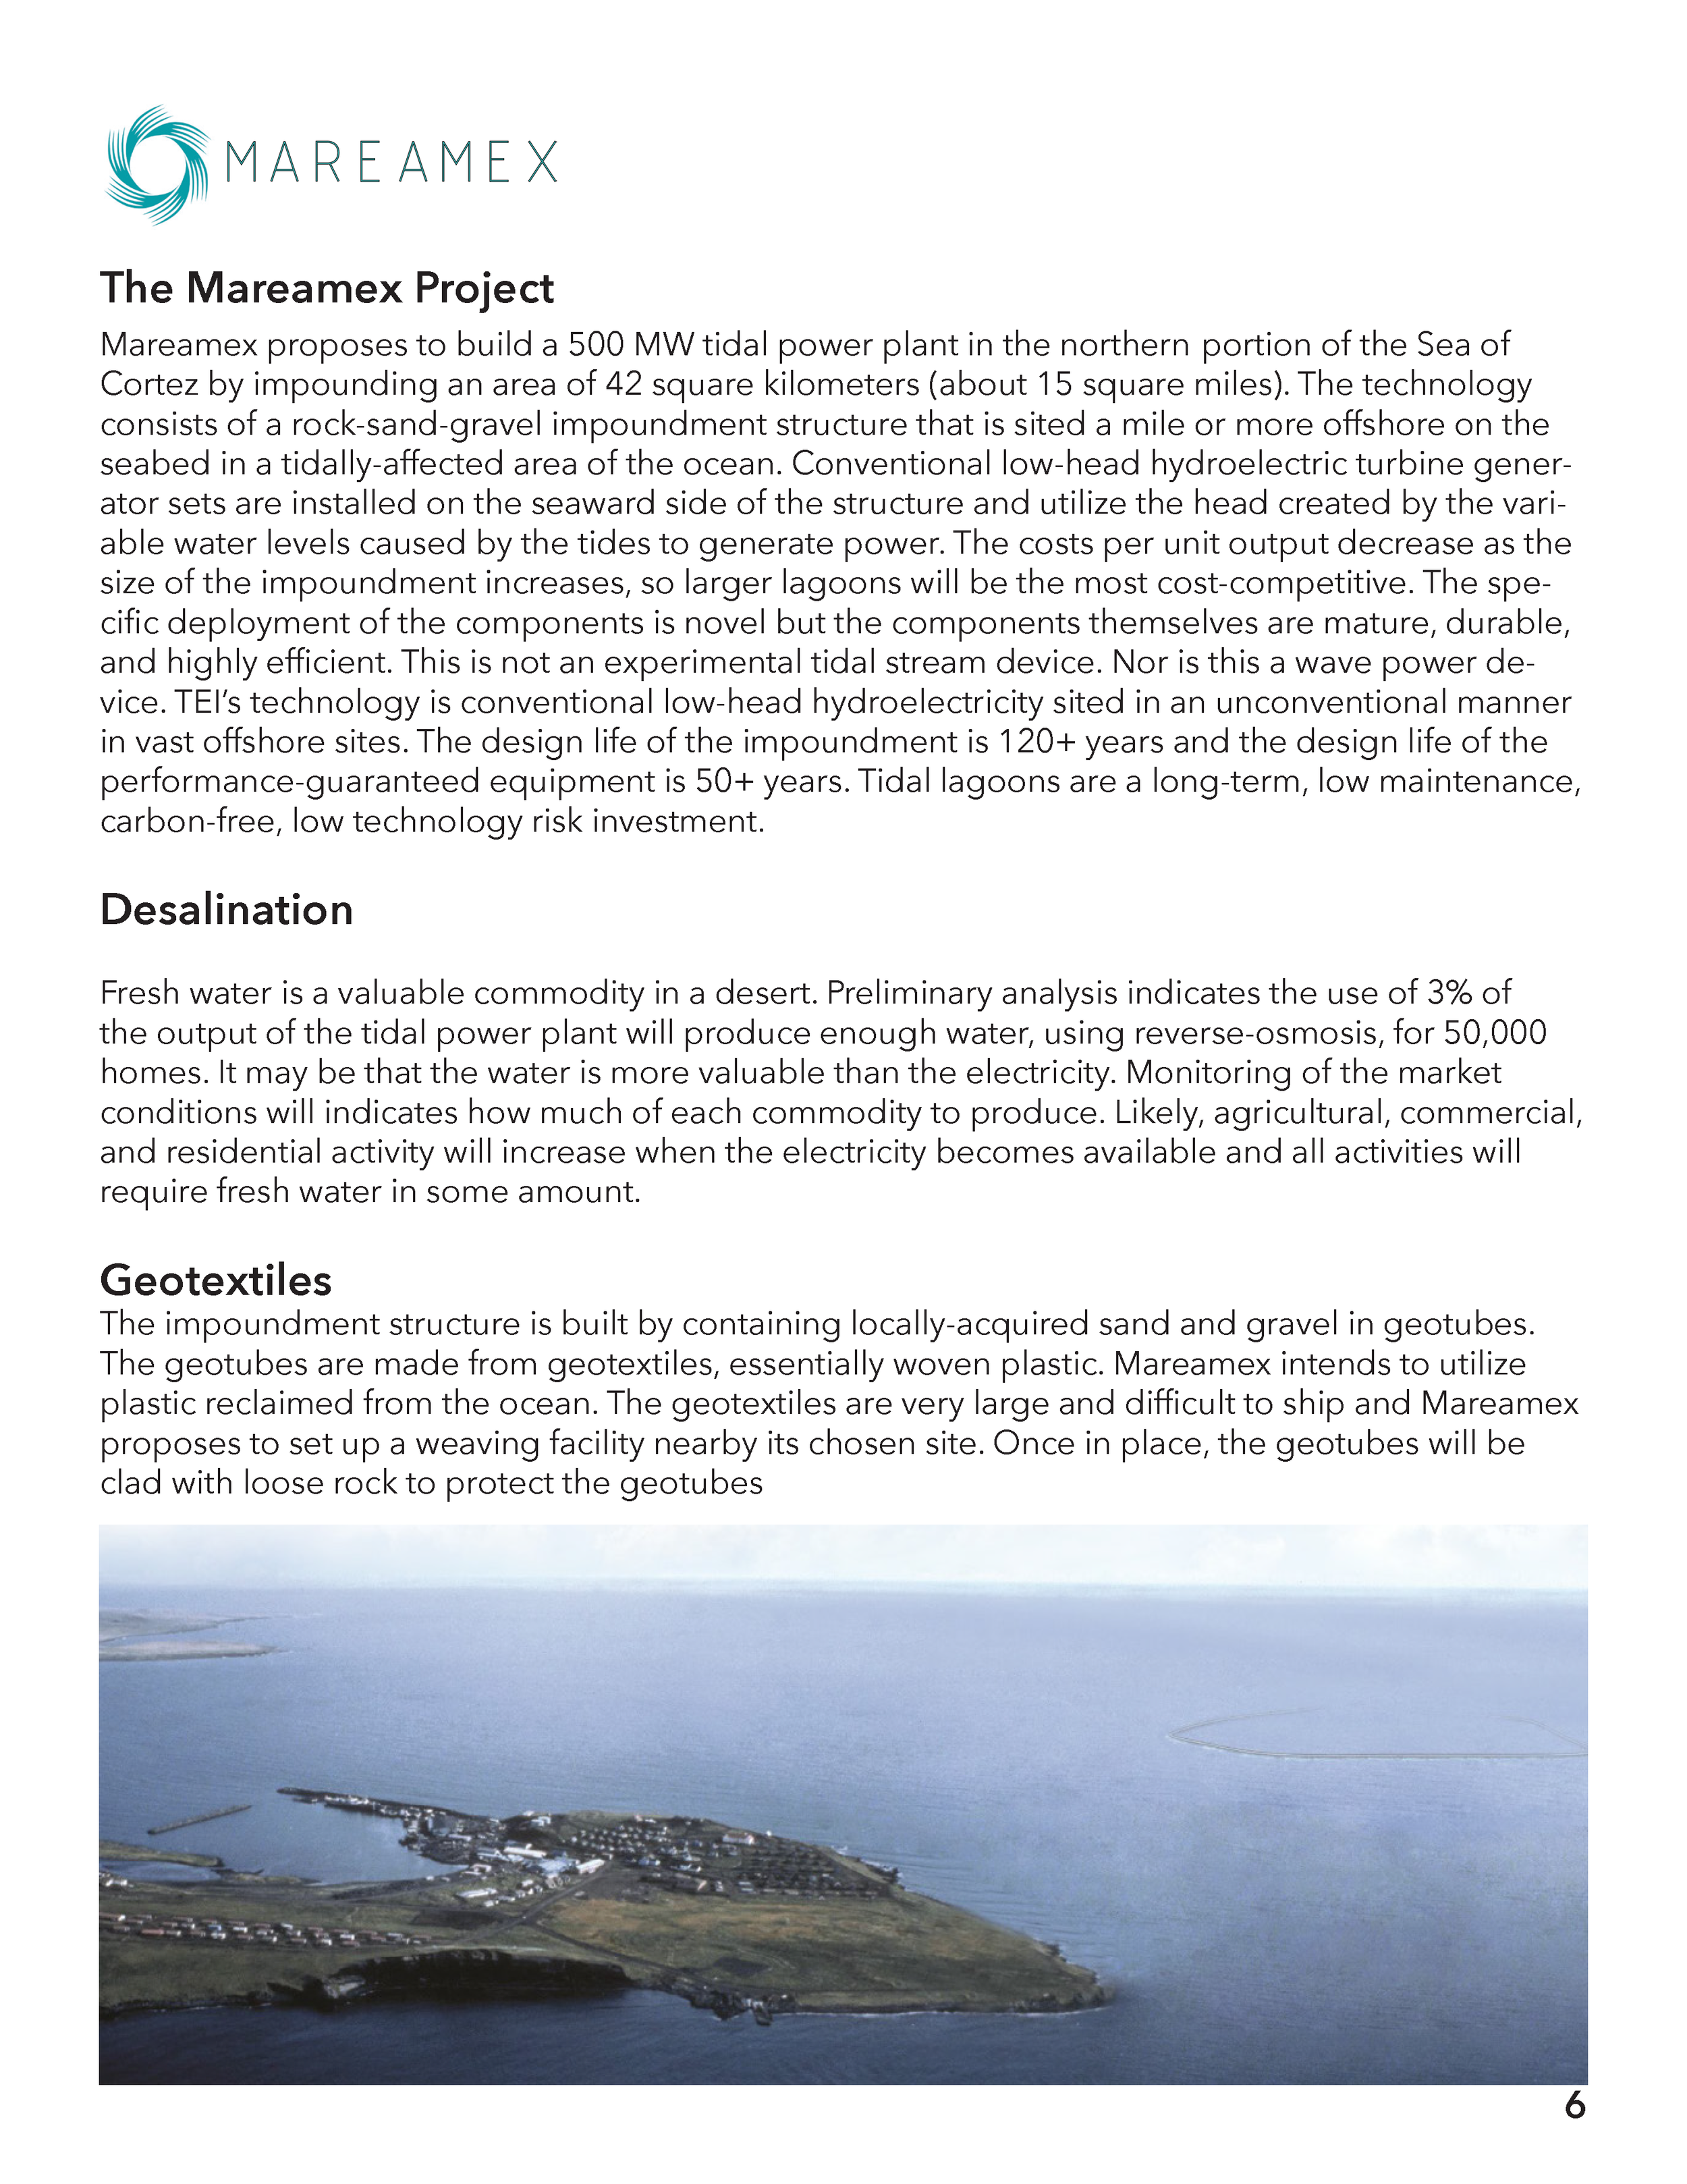 Tidal Electric_Mareamex_Overview_Page_7.png